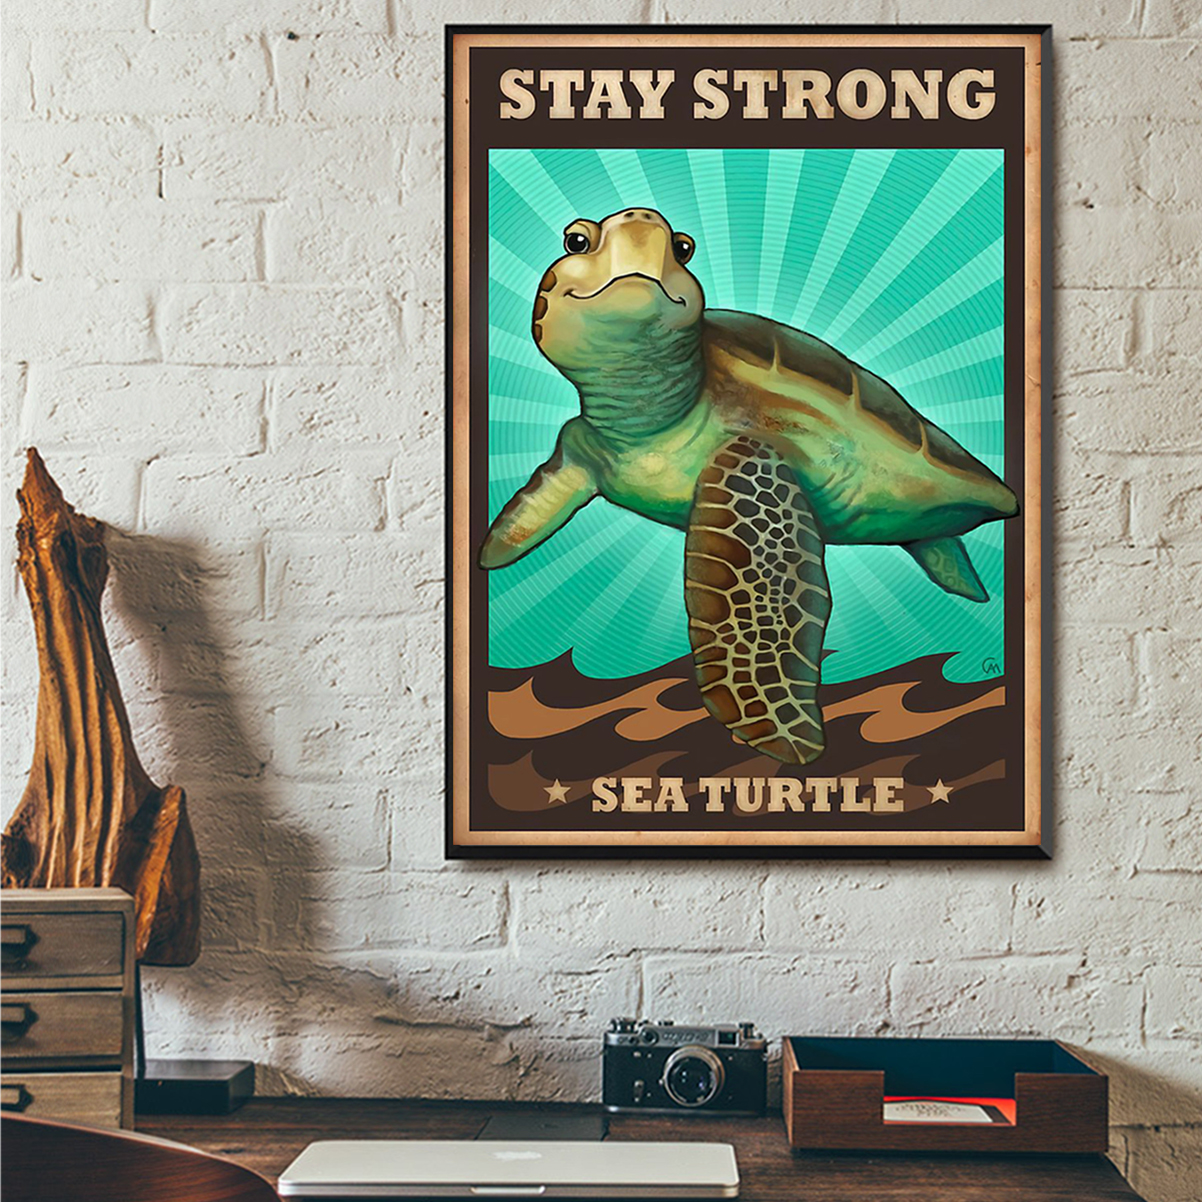 Stay strong sea turtle poster A3